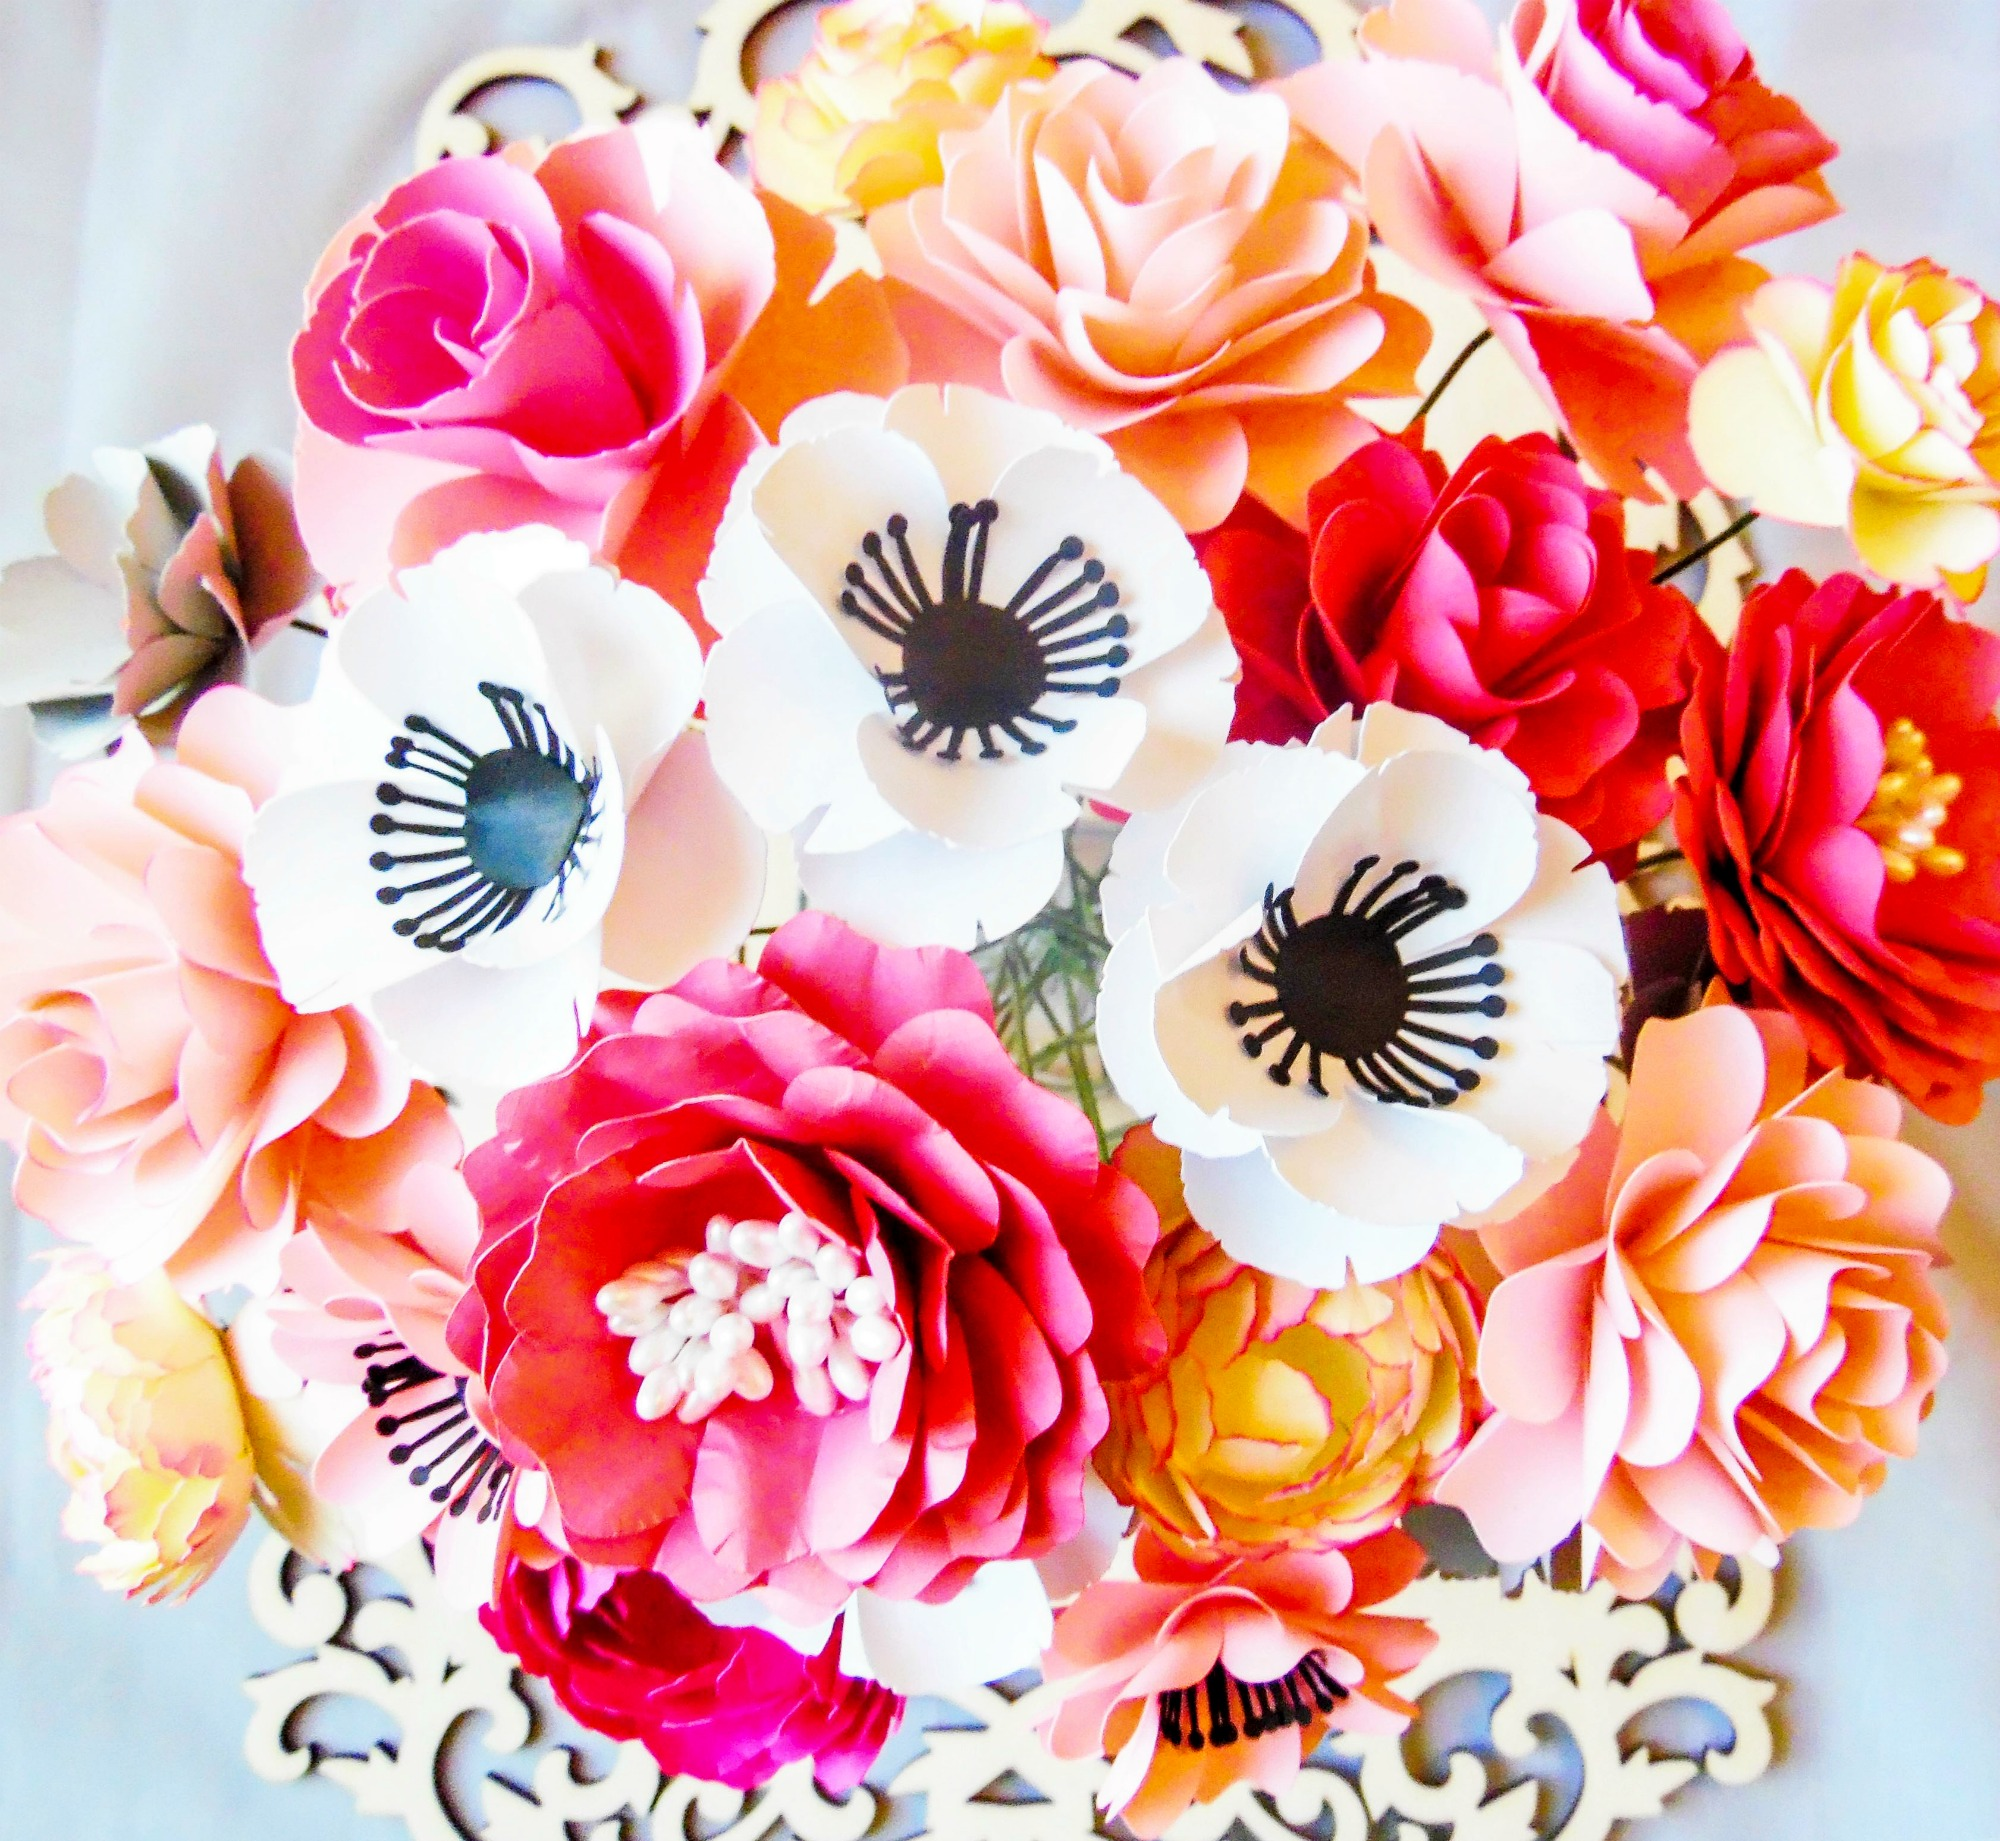 How to Stem a Paper Flower for Bouquets and Arrangements